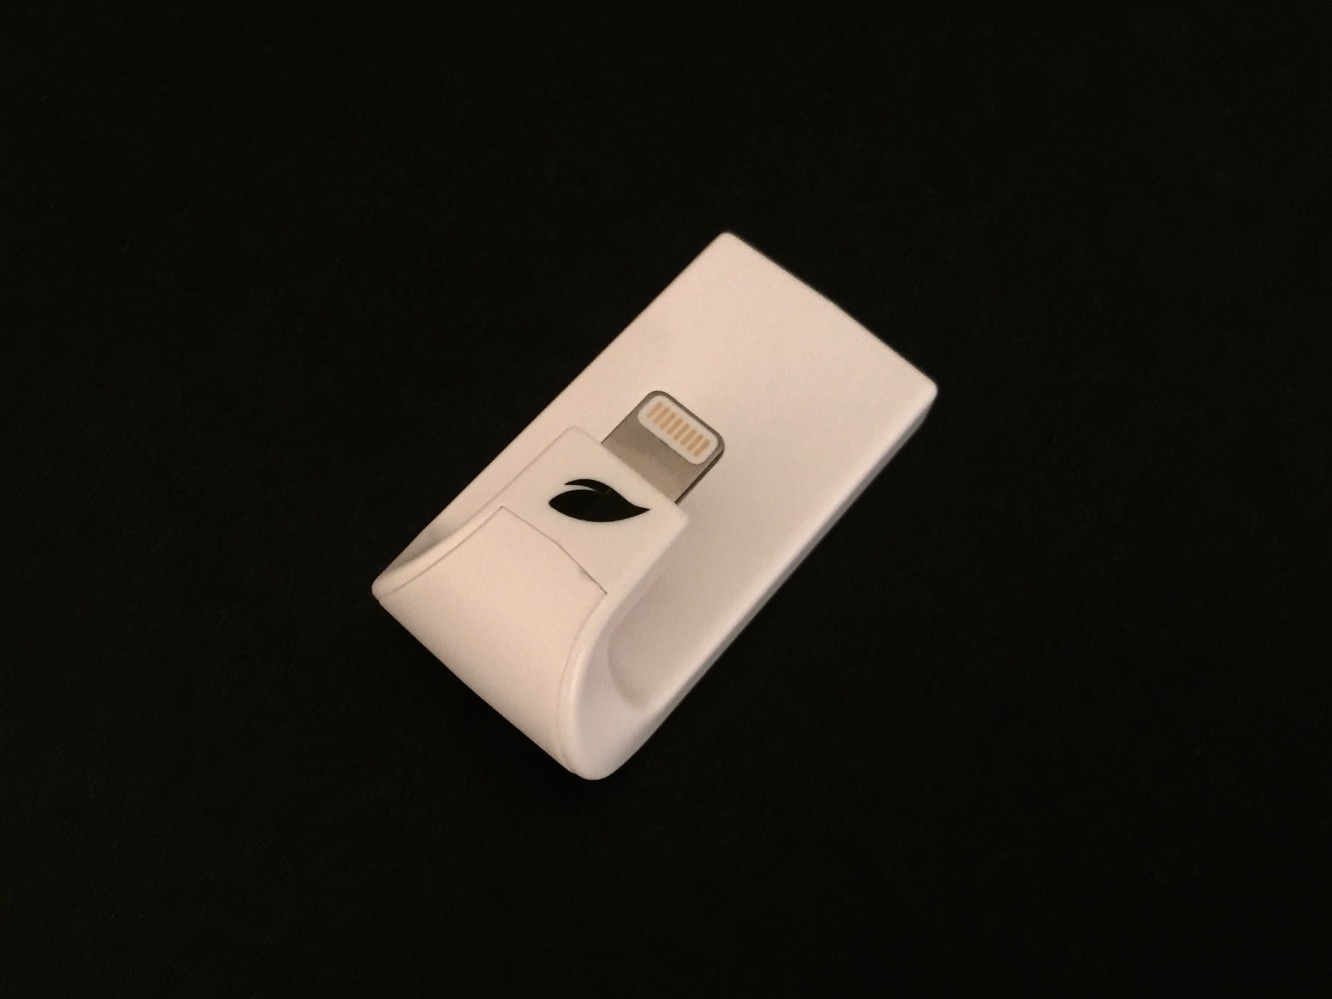 leef iaccess micro sd reader for ios devices white